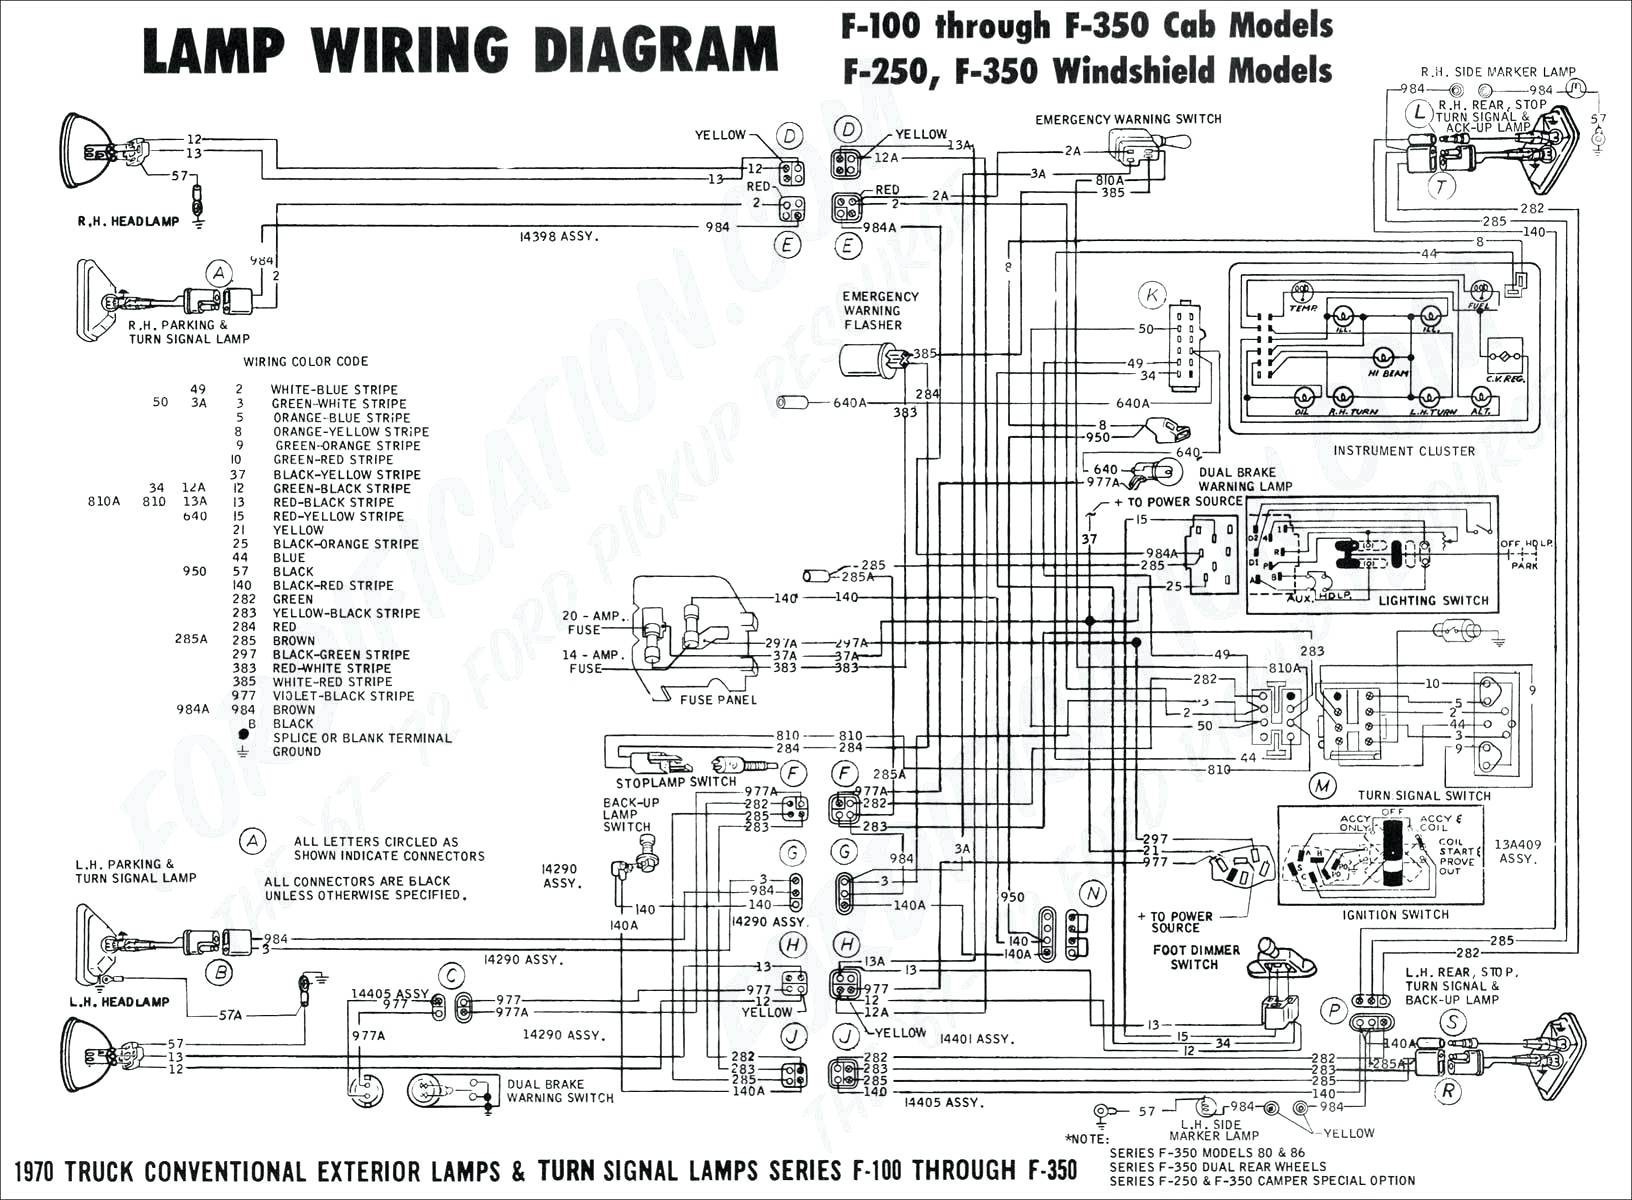 Pin Relay Wiring Diagram Fog Light Free Download Wiring Diagram